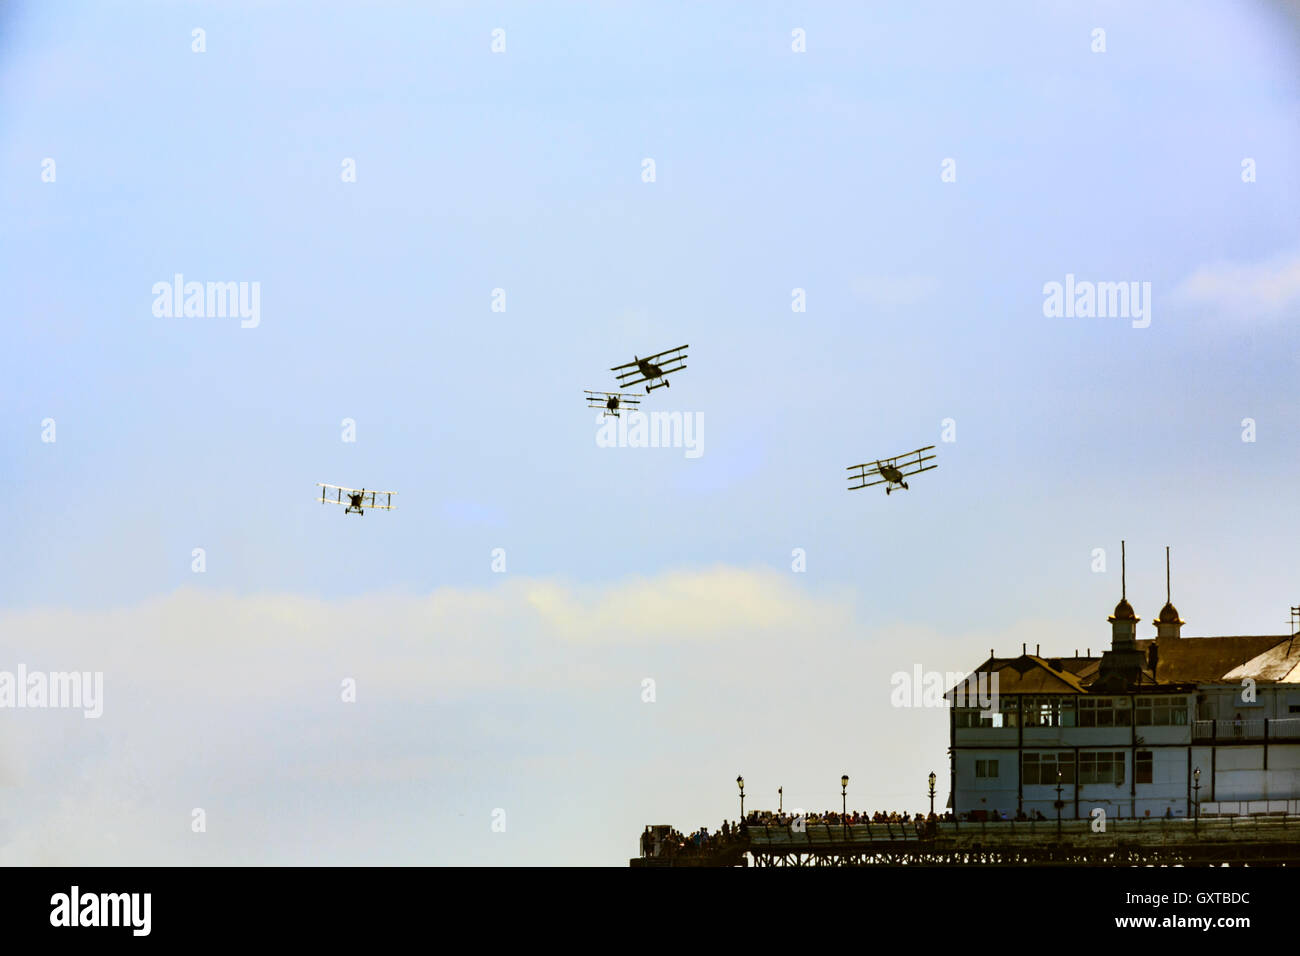 Eastbourne Airbourne 2016 Great War Display Team Triplanes Biplane - Stock Image